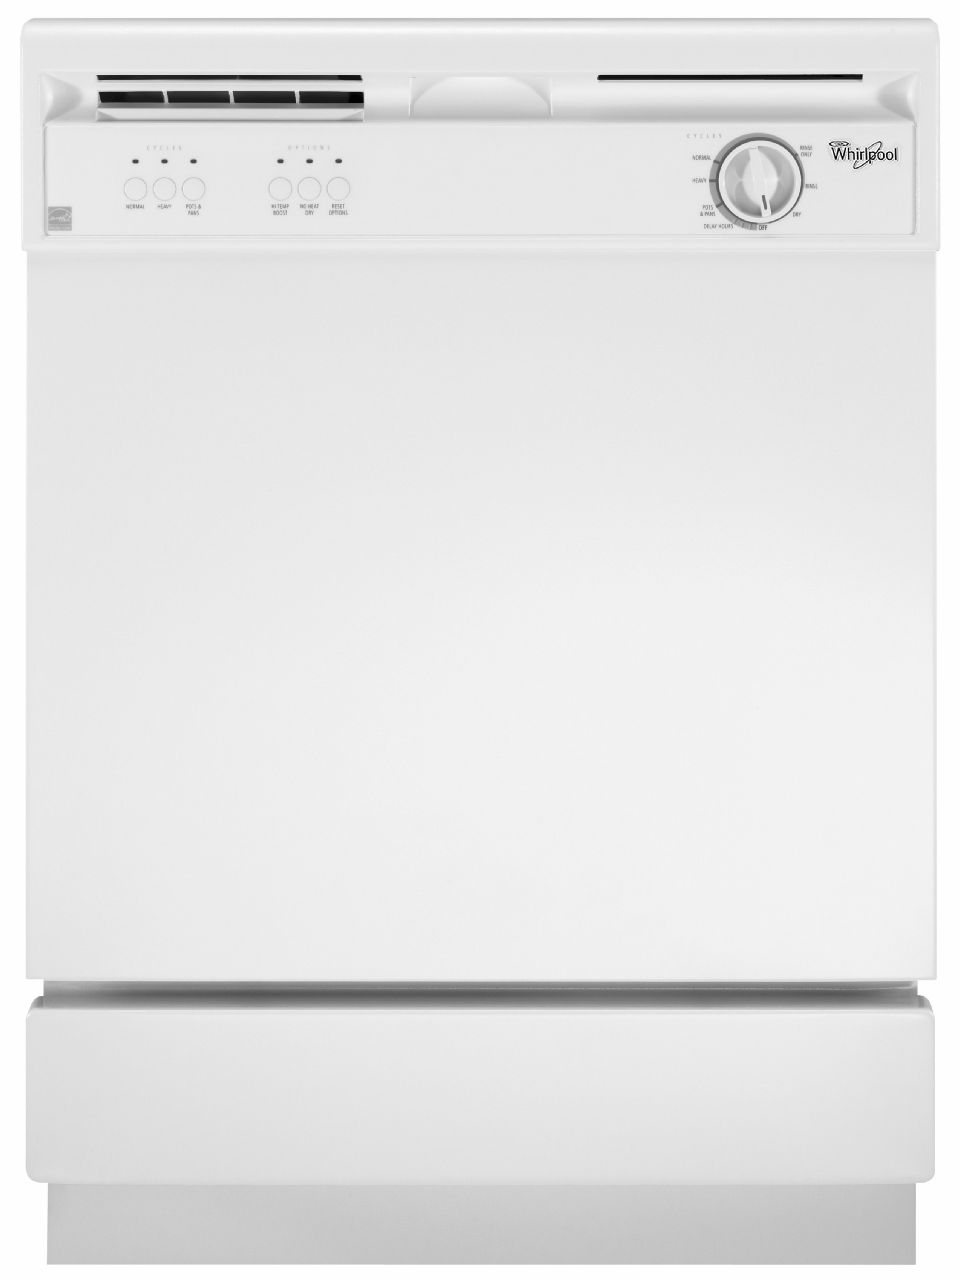 Whirlpool Dishwasher Model DU850SWPQ4 Parts